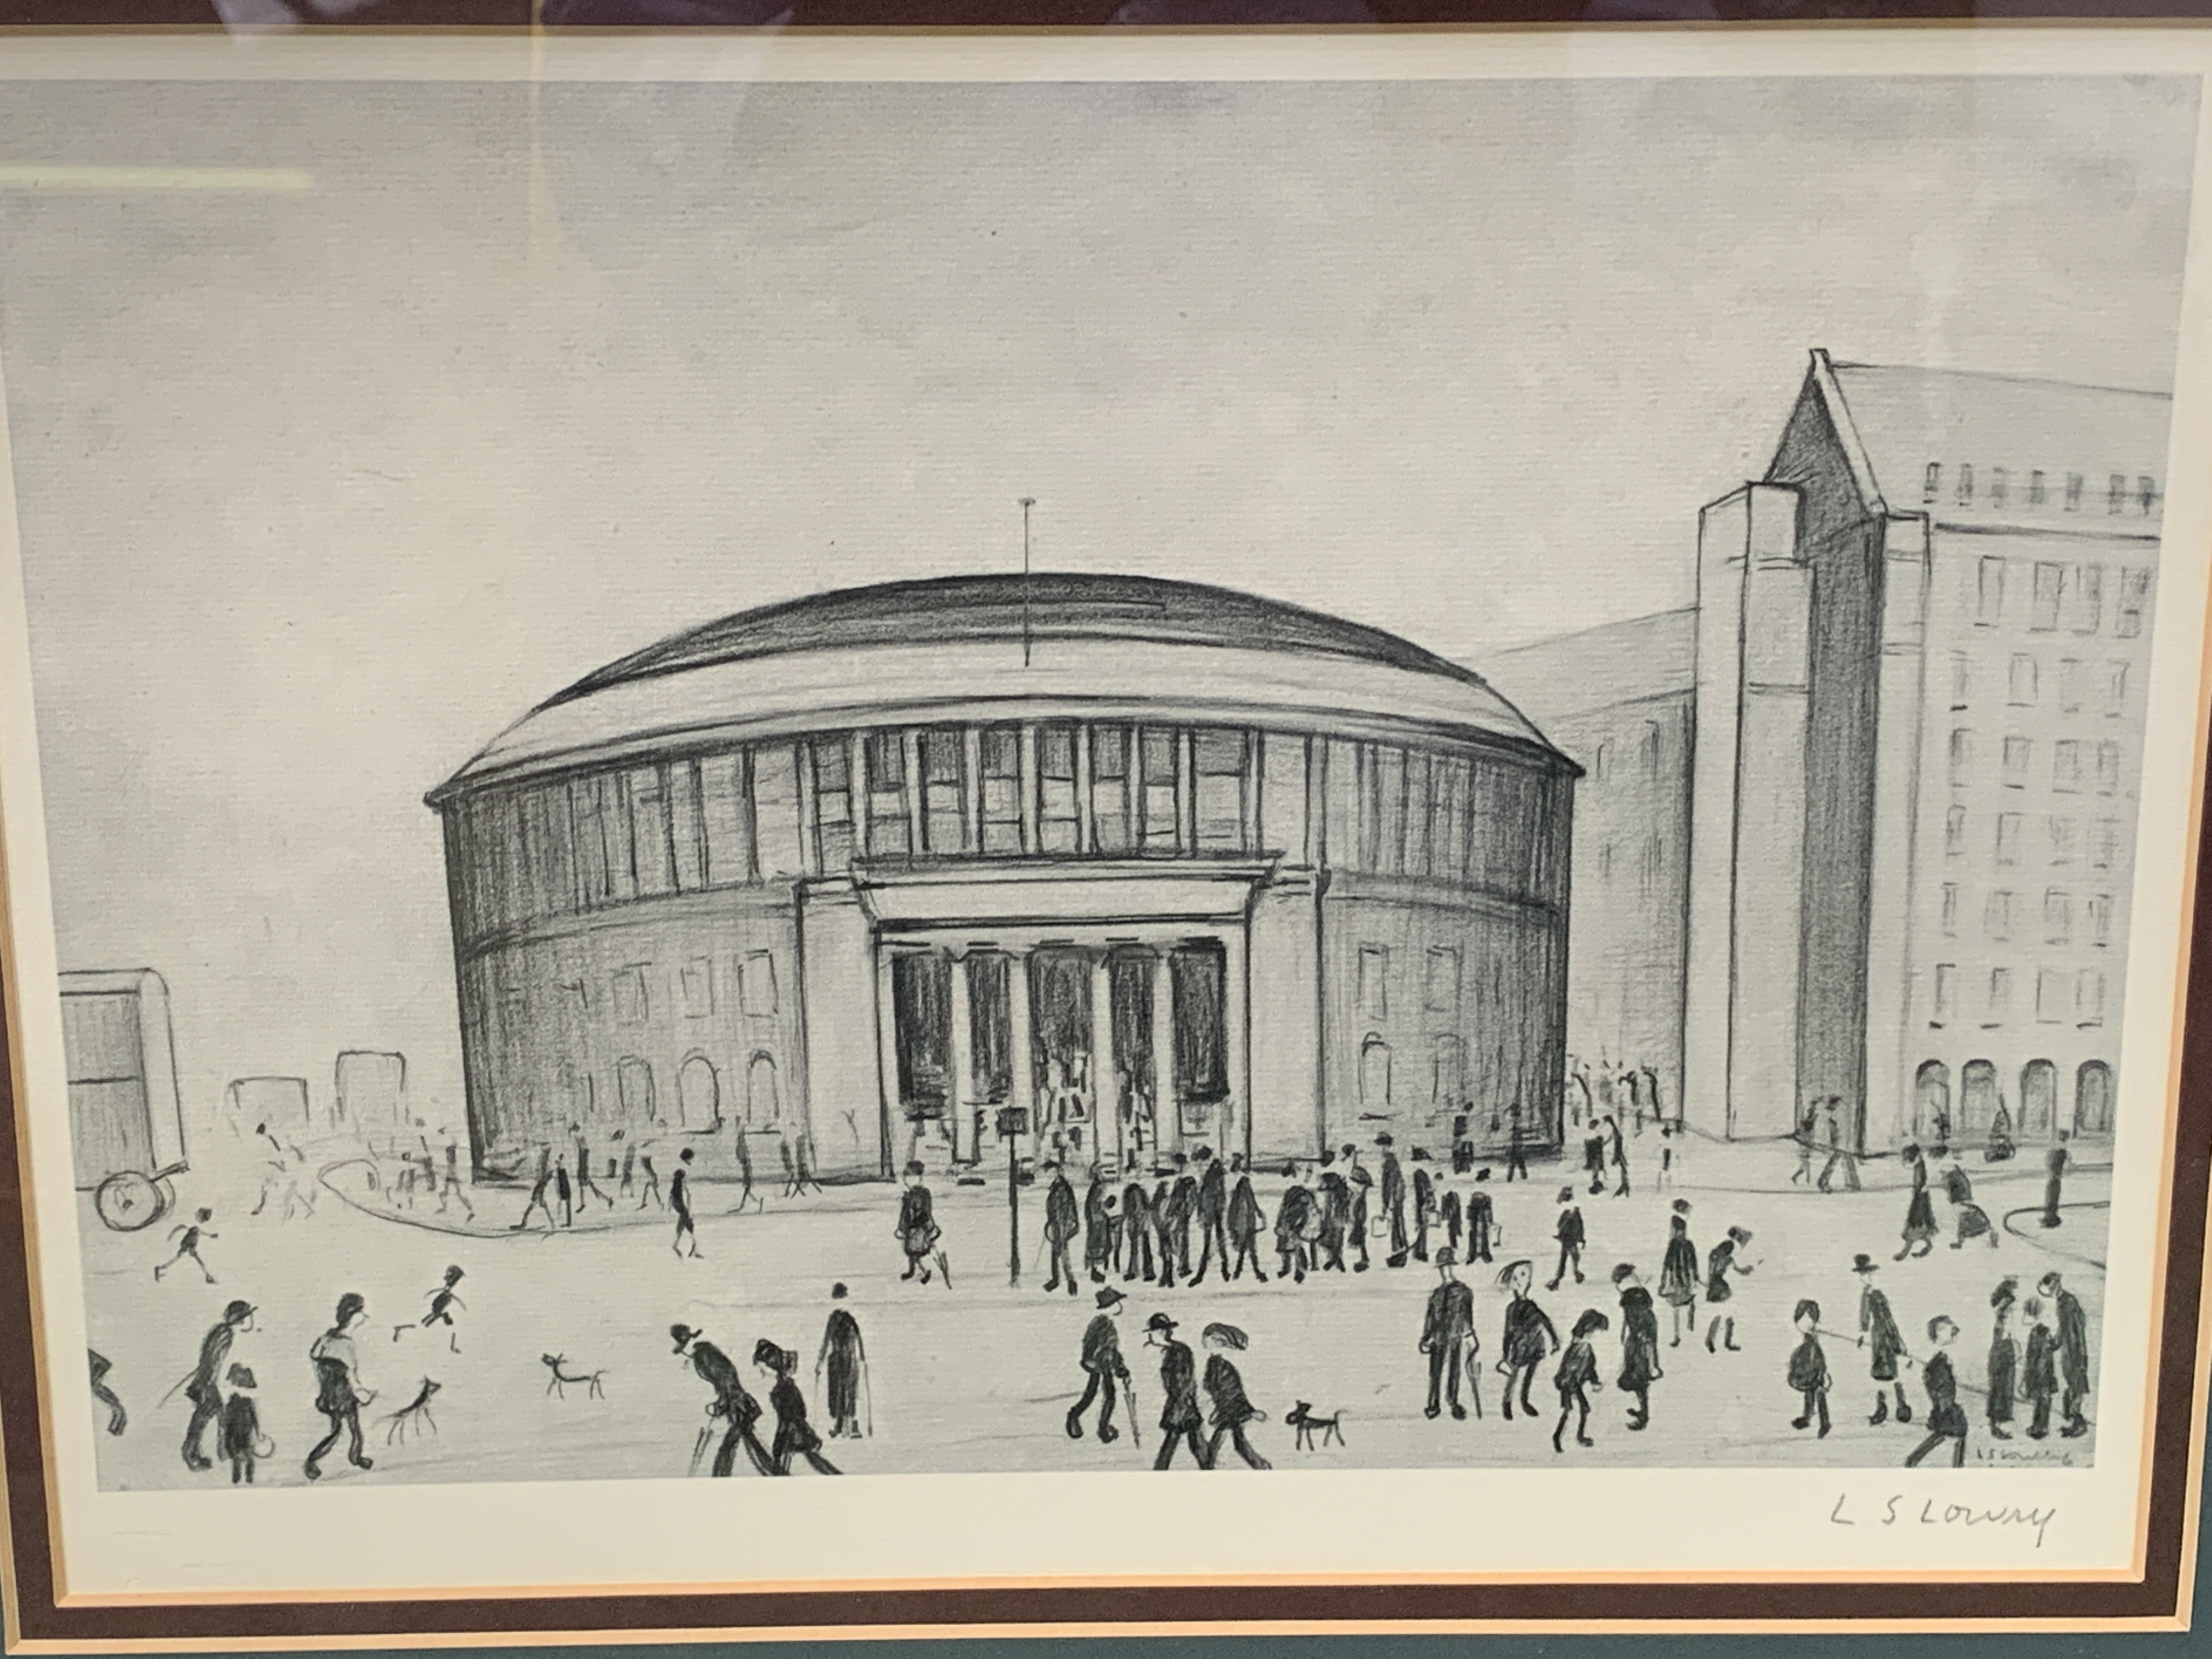 Framed and glazed Limited Edition L S Lowry print of Manchester Reference Library